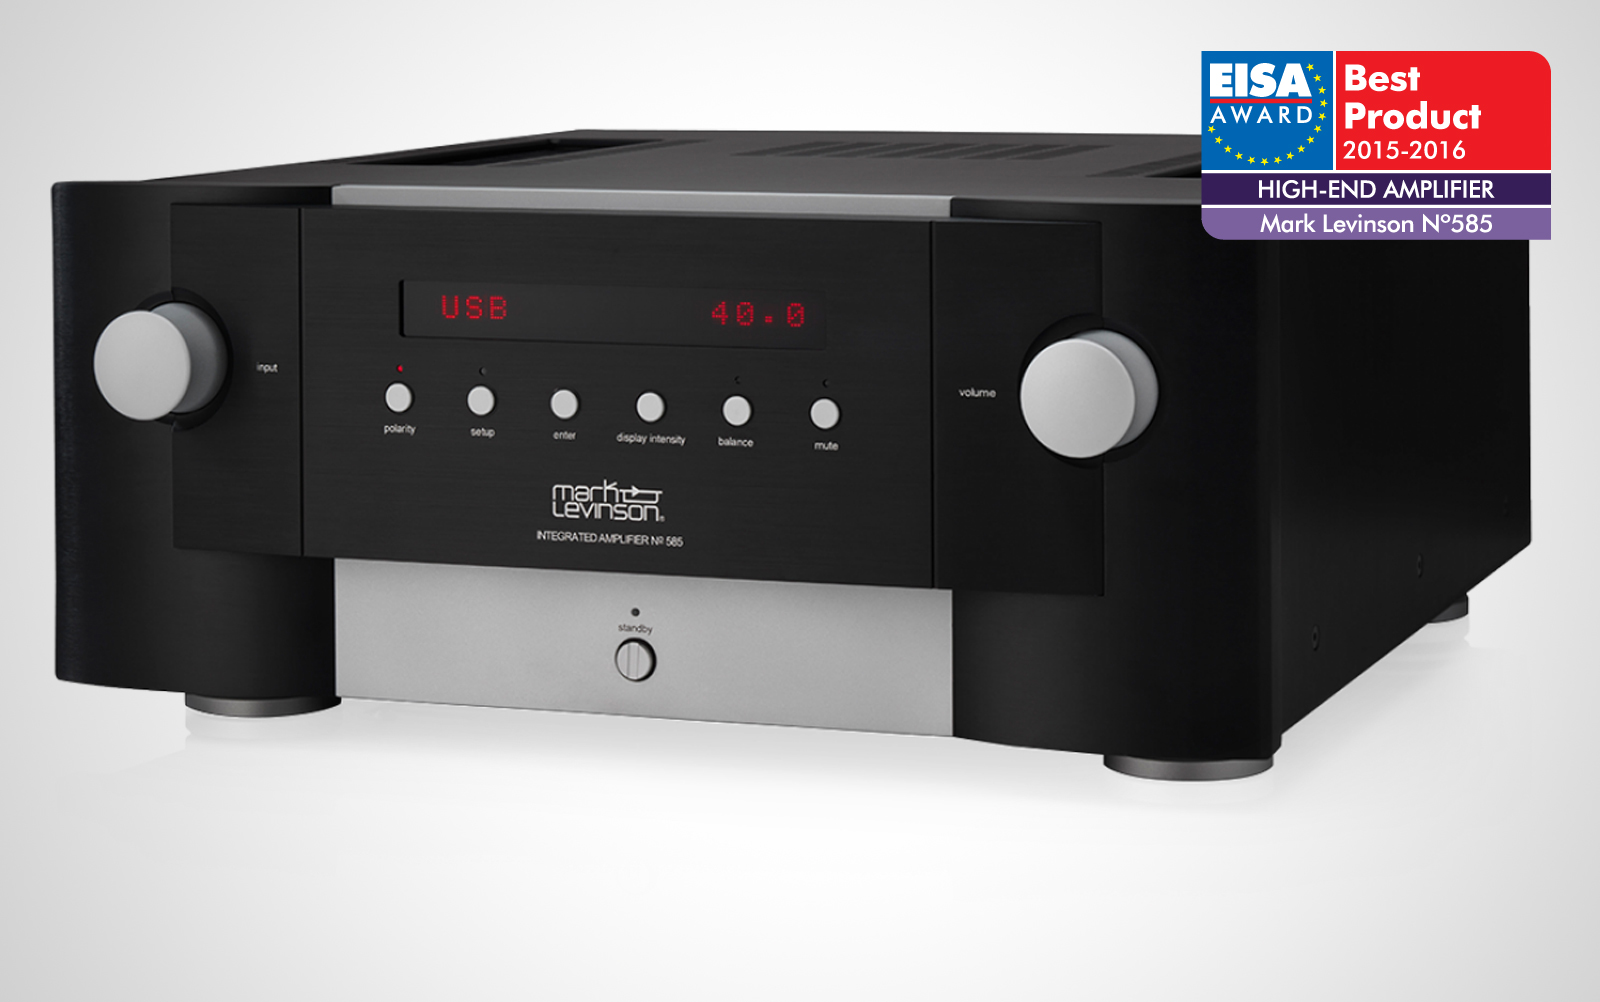 MARK-LEVINSON-NO-585_01_eisa